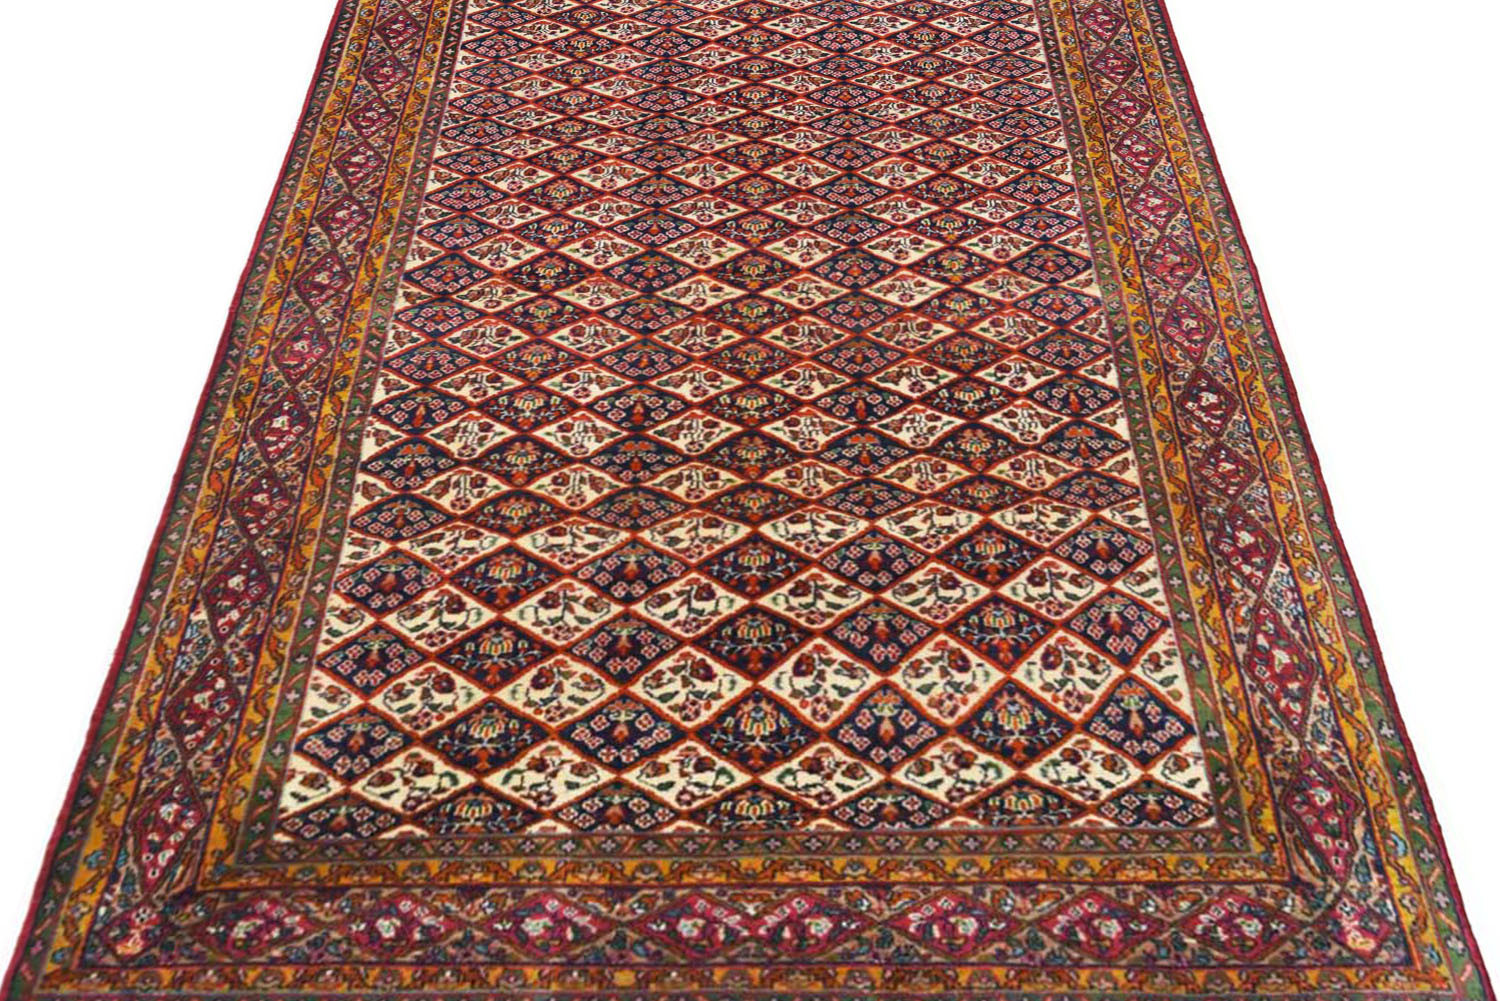 Buy 4 9 X 7 0 Machey Bokhara Rug Online At Rugs And Beyond